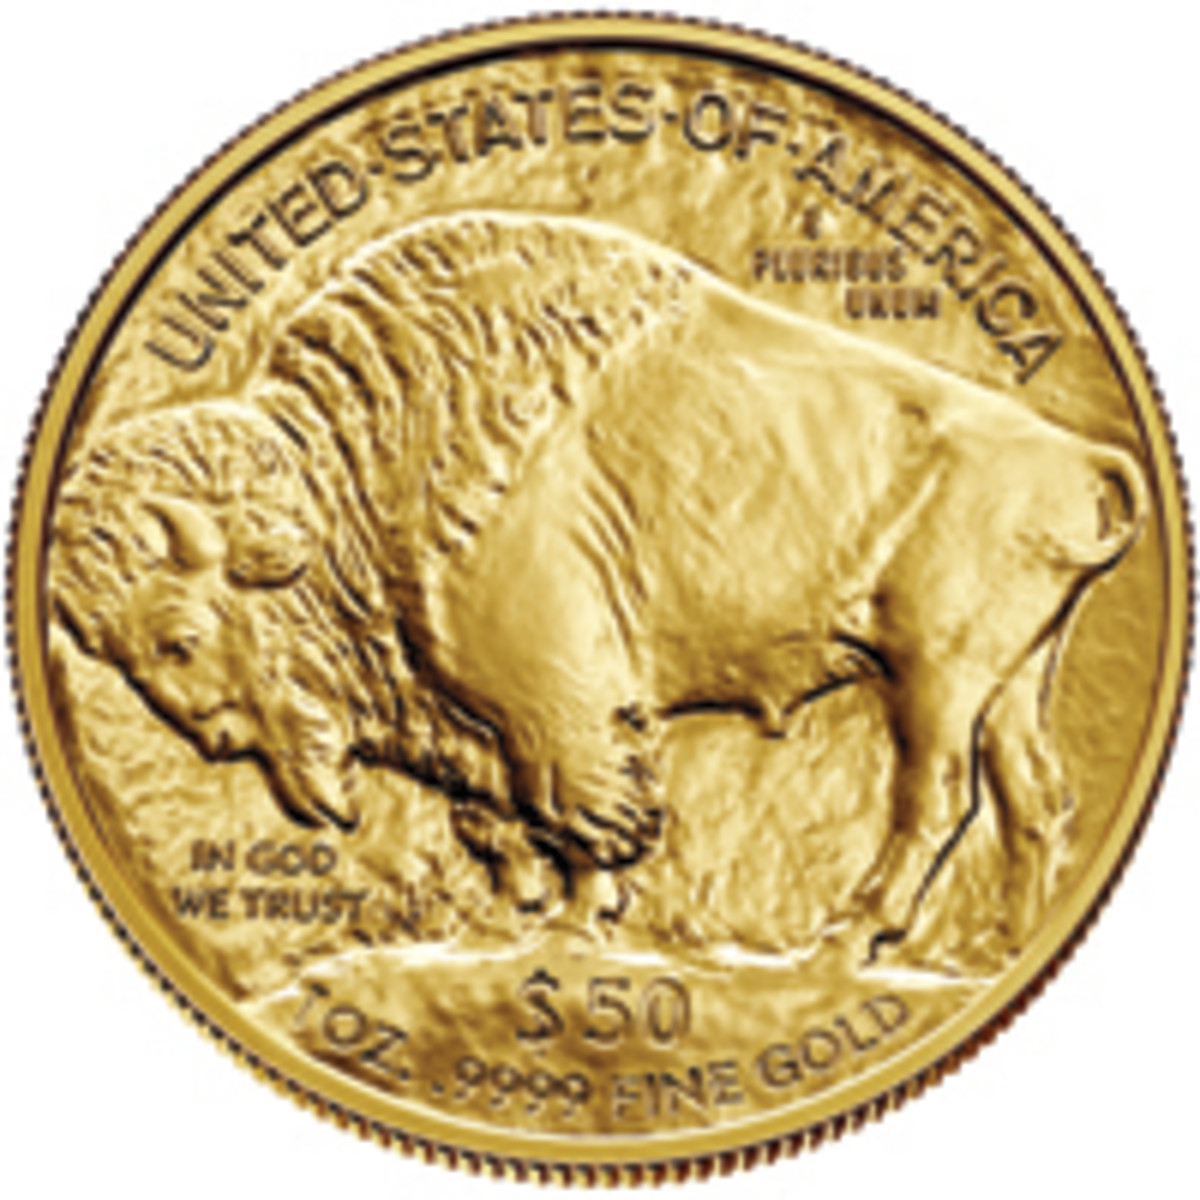 """Many argue that purchasing bullion coins, like this $50 gold Buffalo, is no different than """"purchasing"""" two ten dollar bills with a twenty dollar bill at the bank. (Image courtesy of The United States Mint)"""